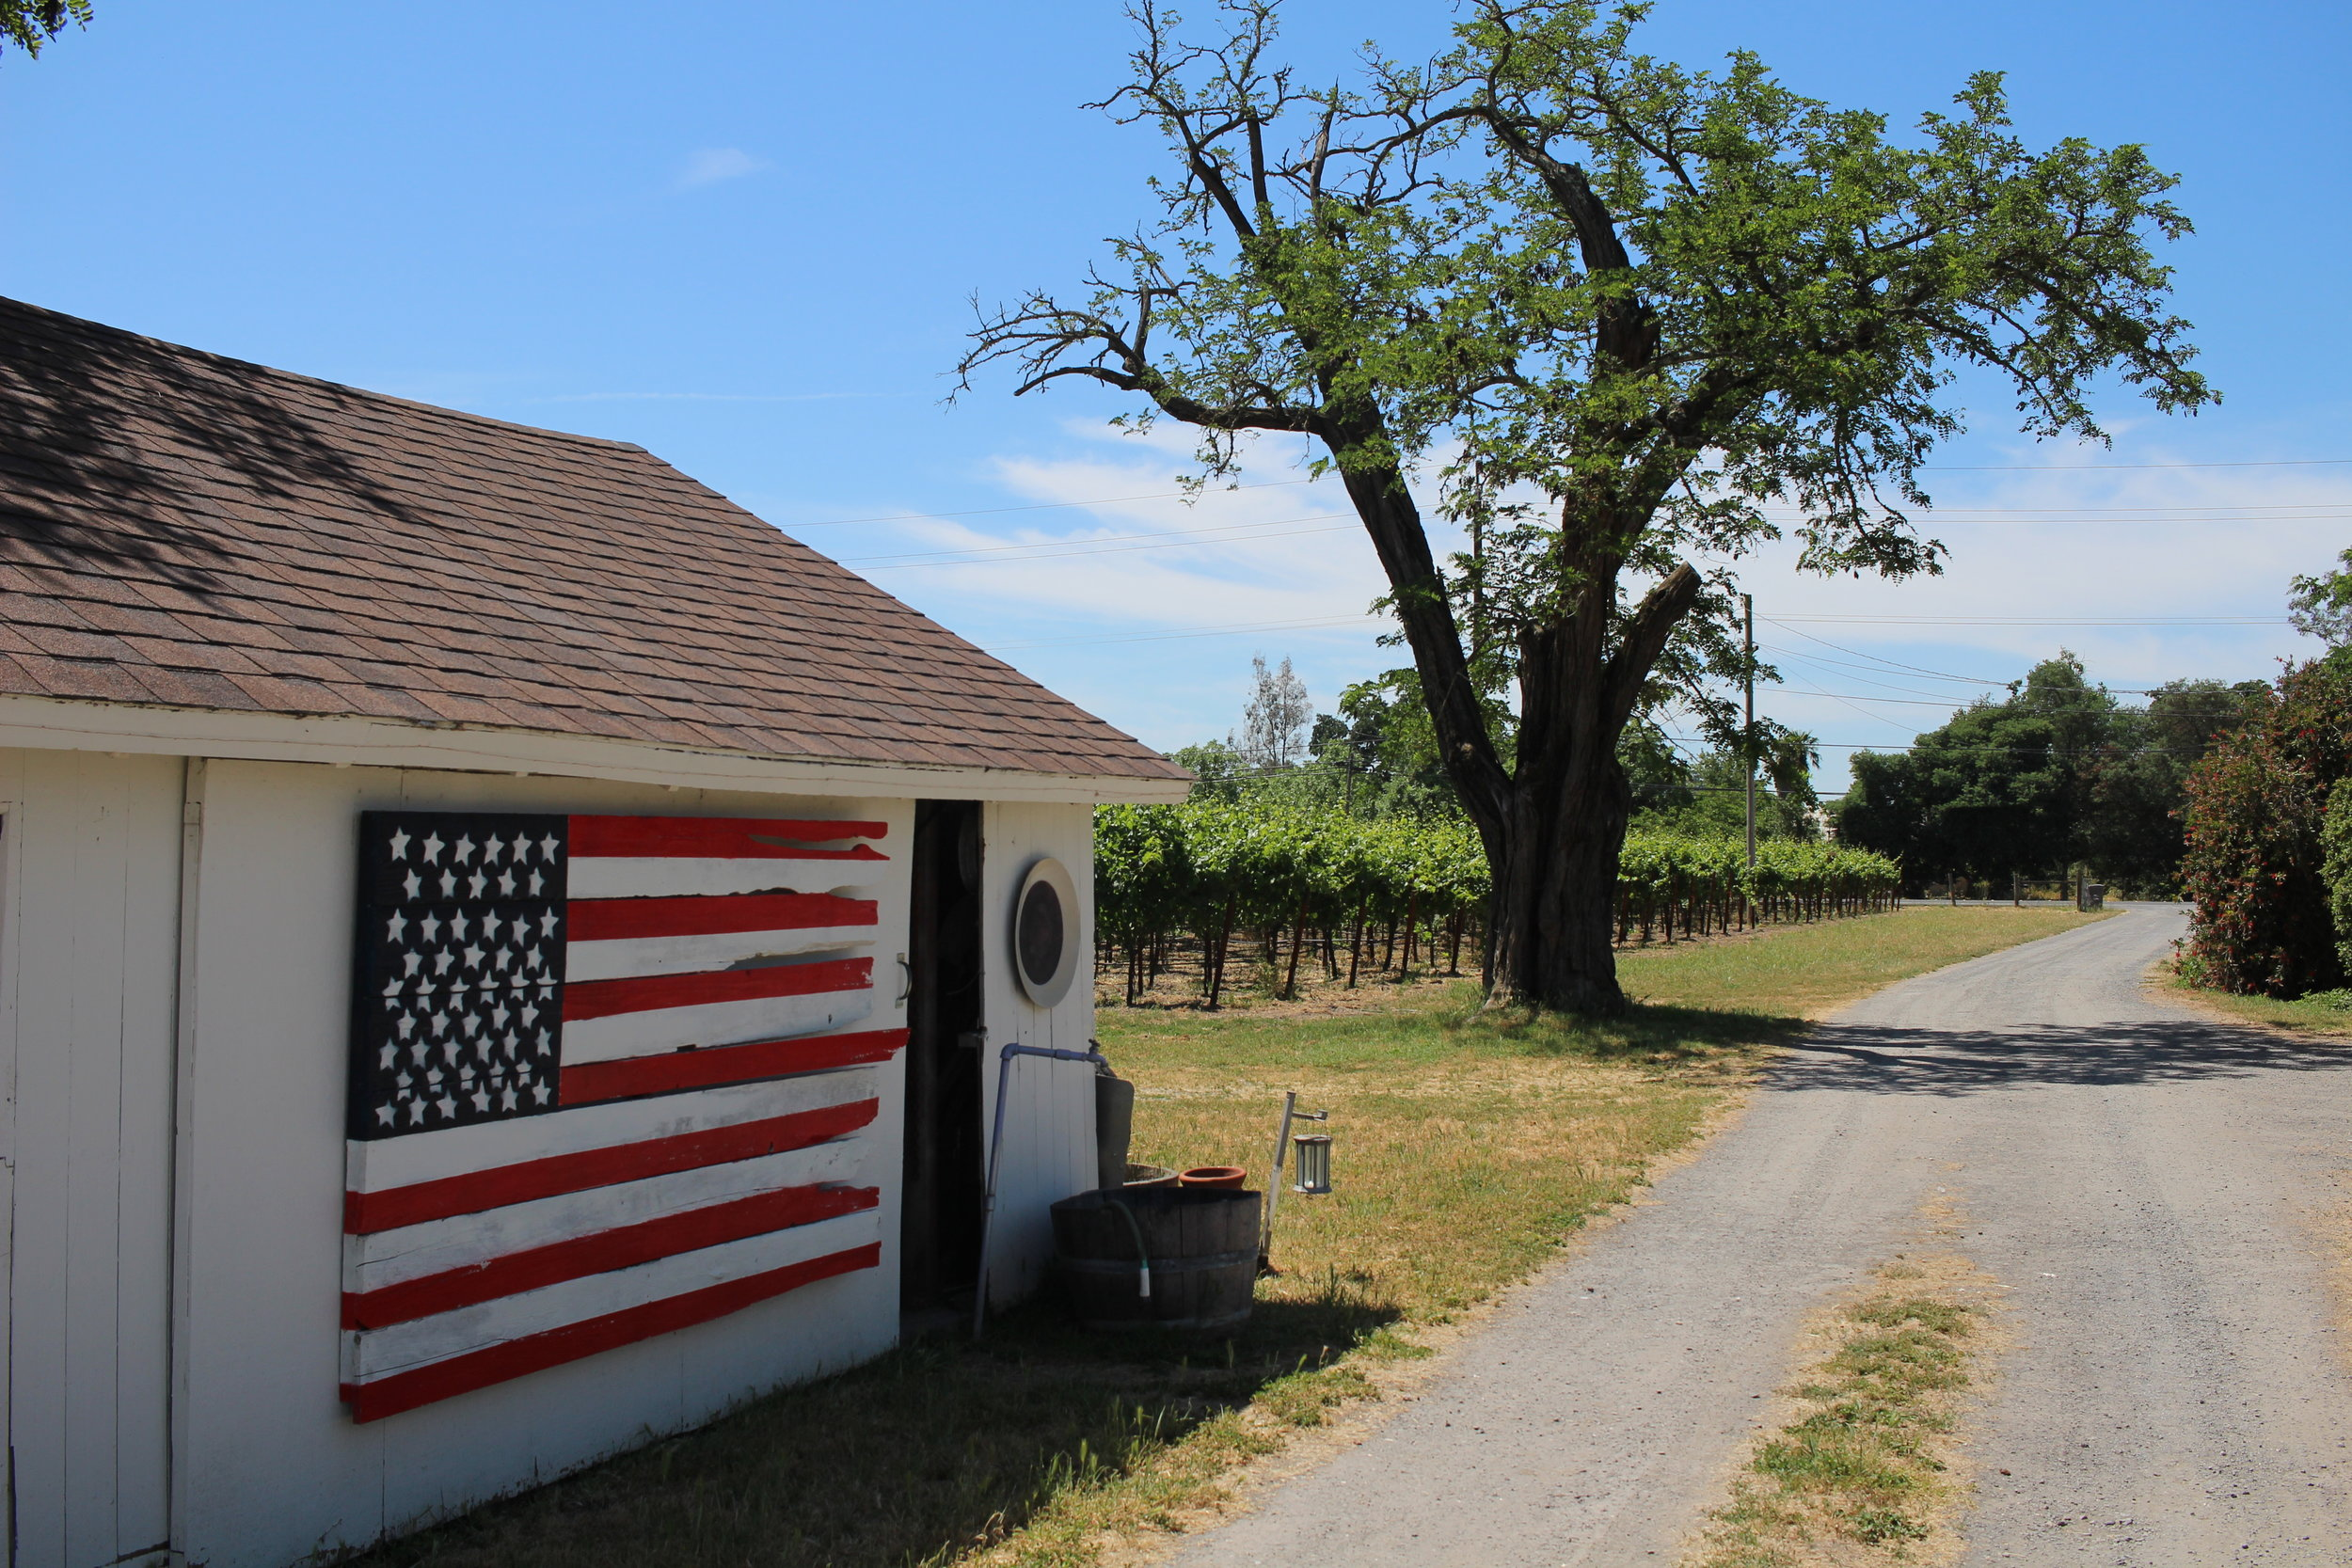 Happy Fourth of July from Napa Tourist Guide